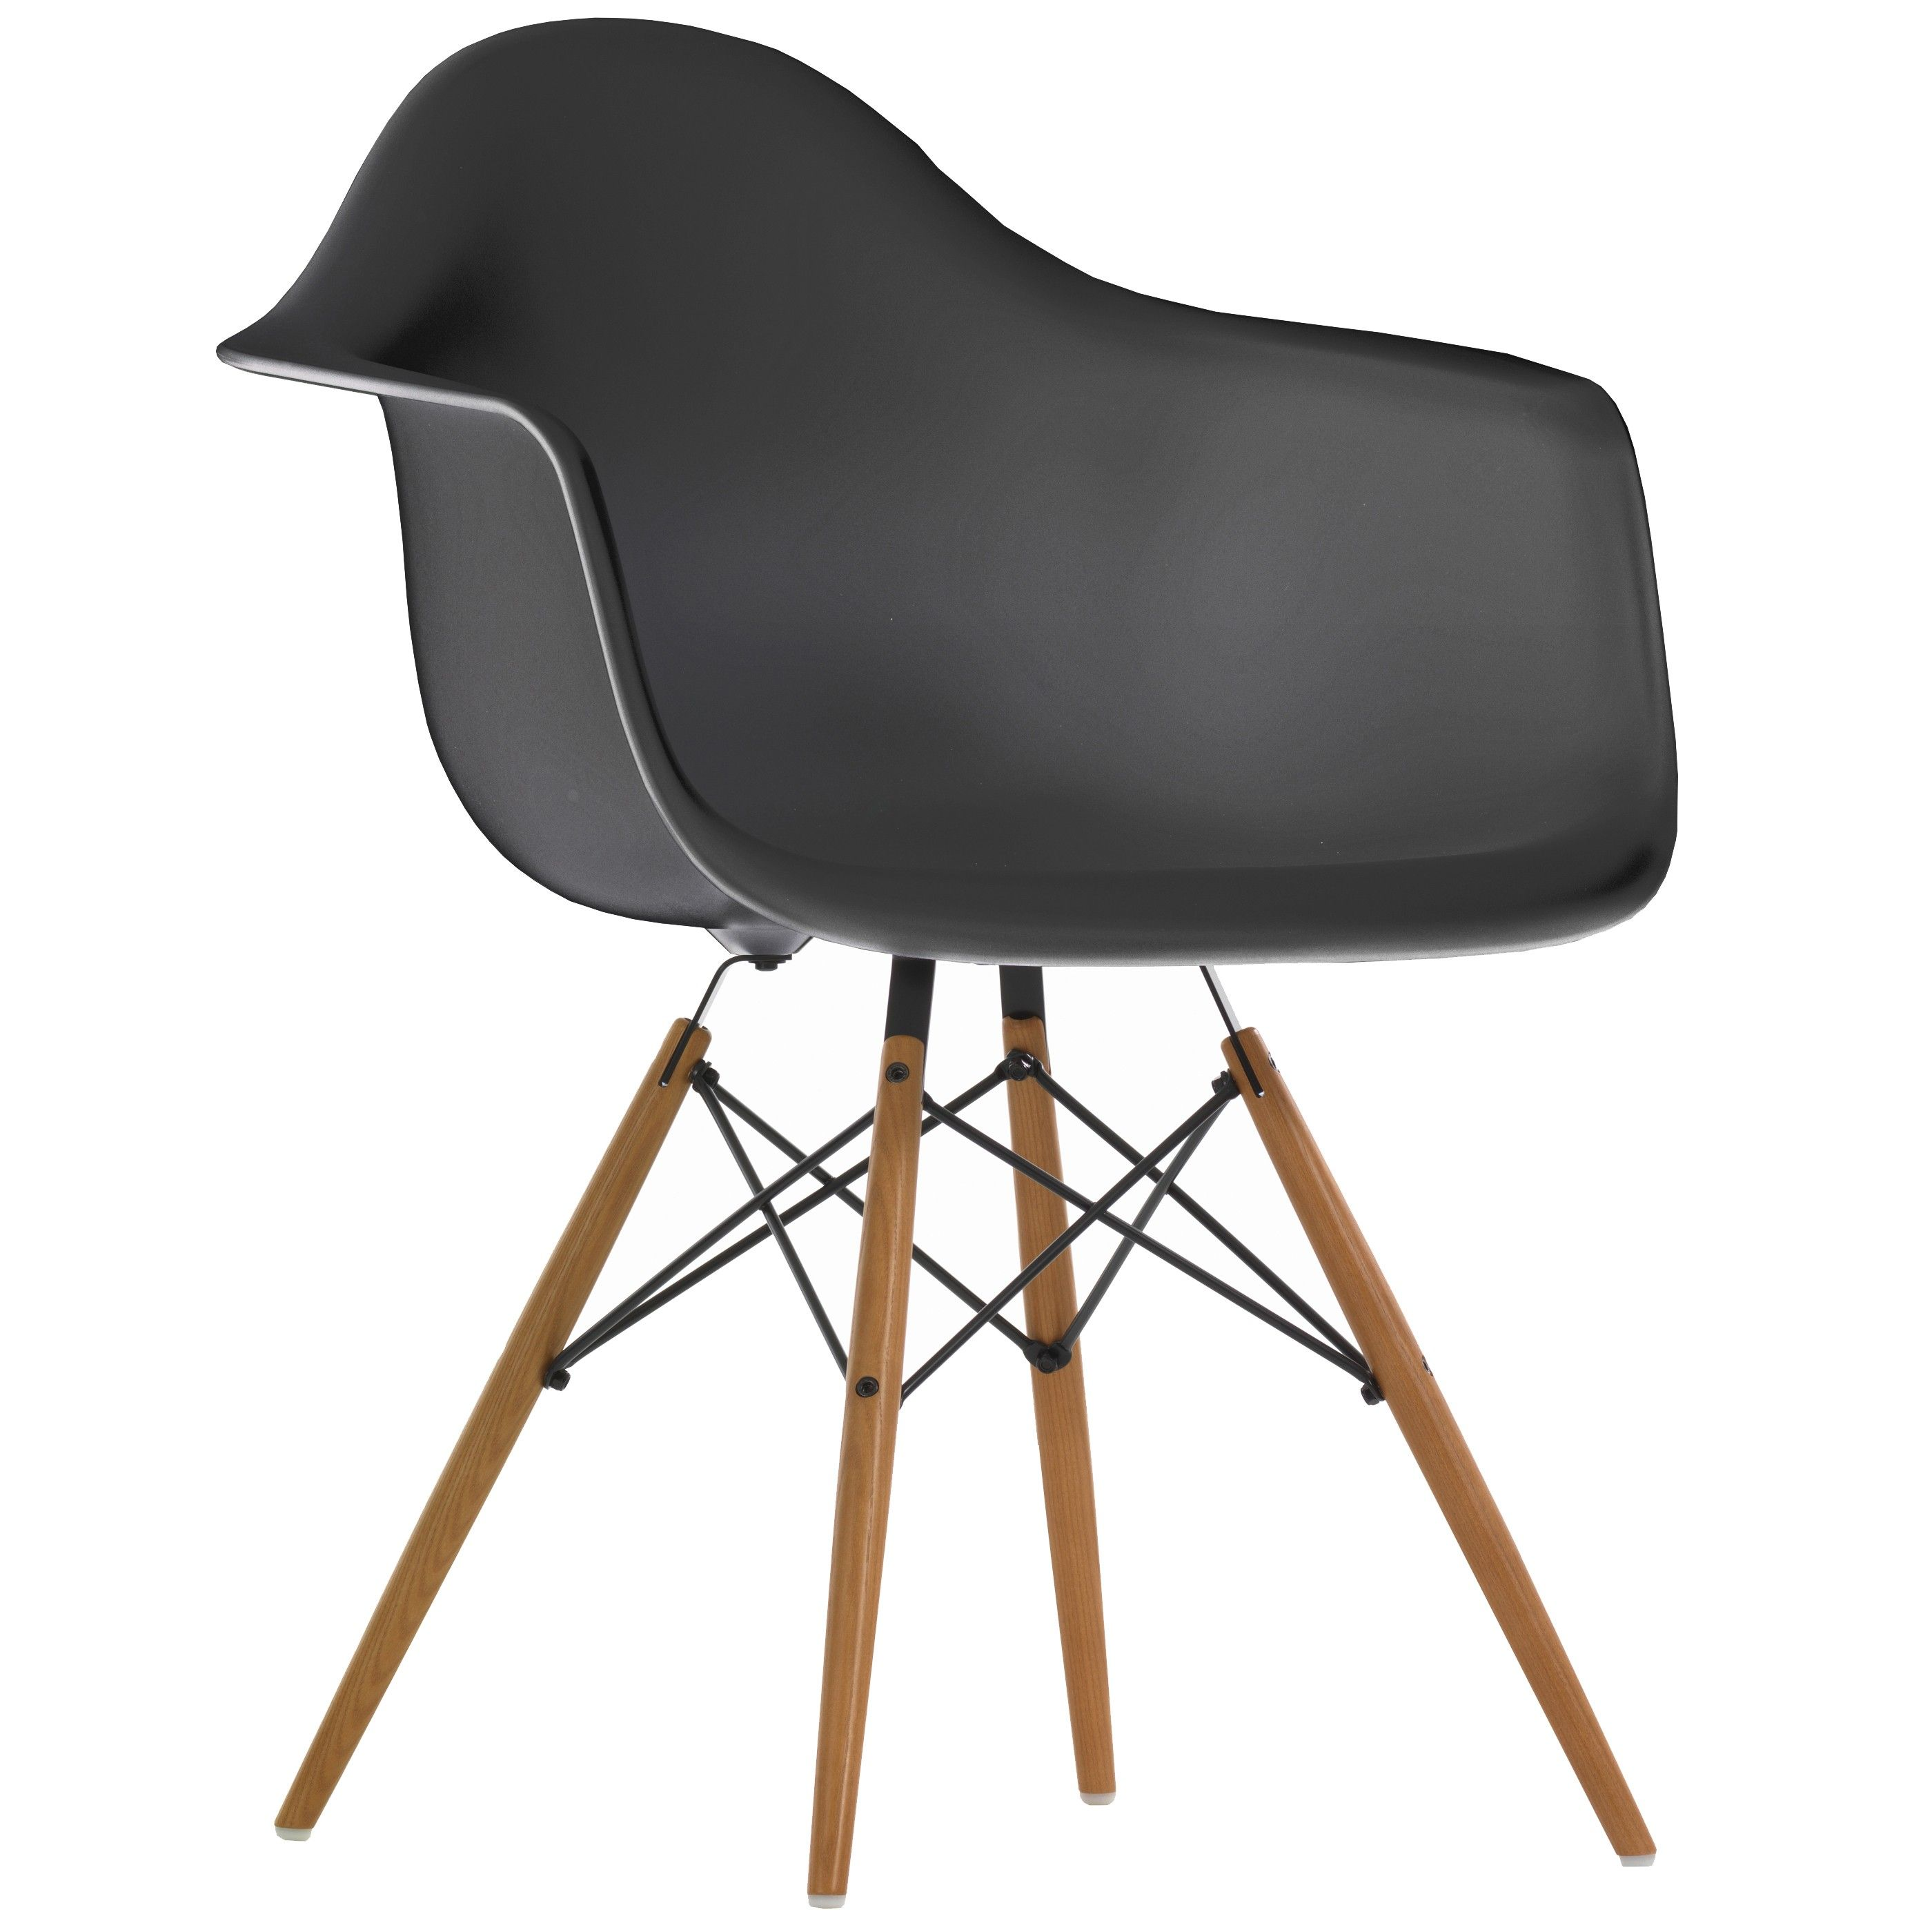 vitra eames daw stoel met geelachtig esdoorn onderstel. Black Bedroom Furniture Sets. Home Design Ideas